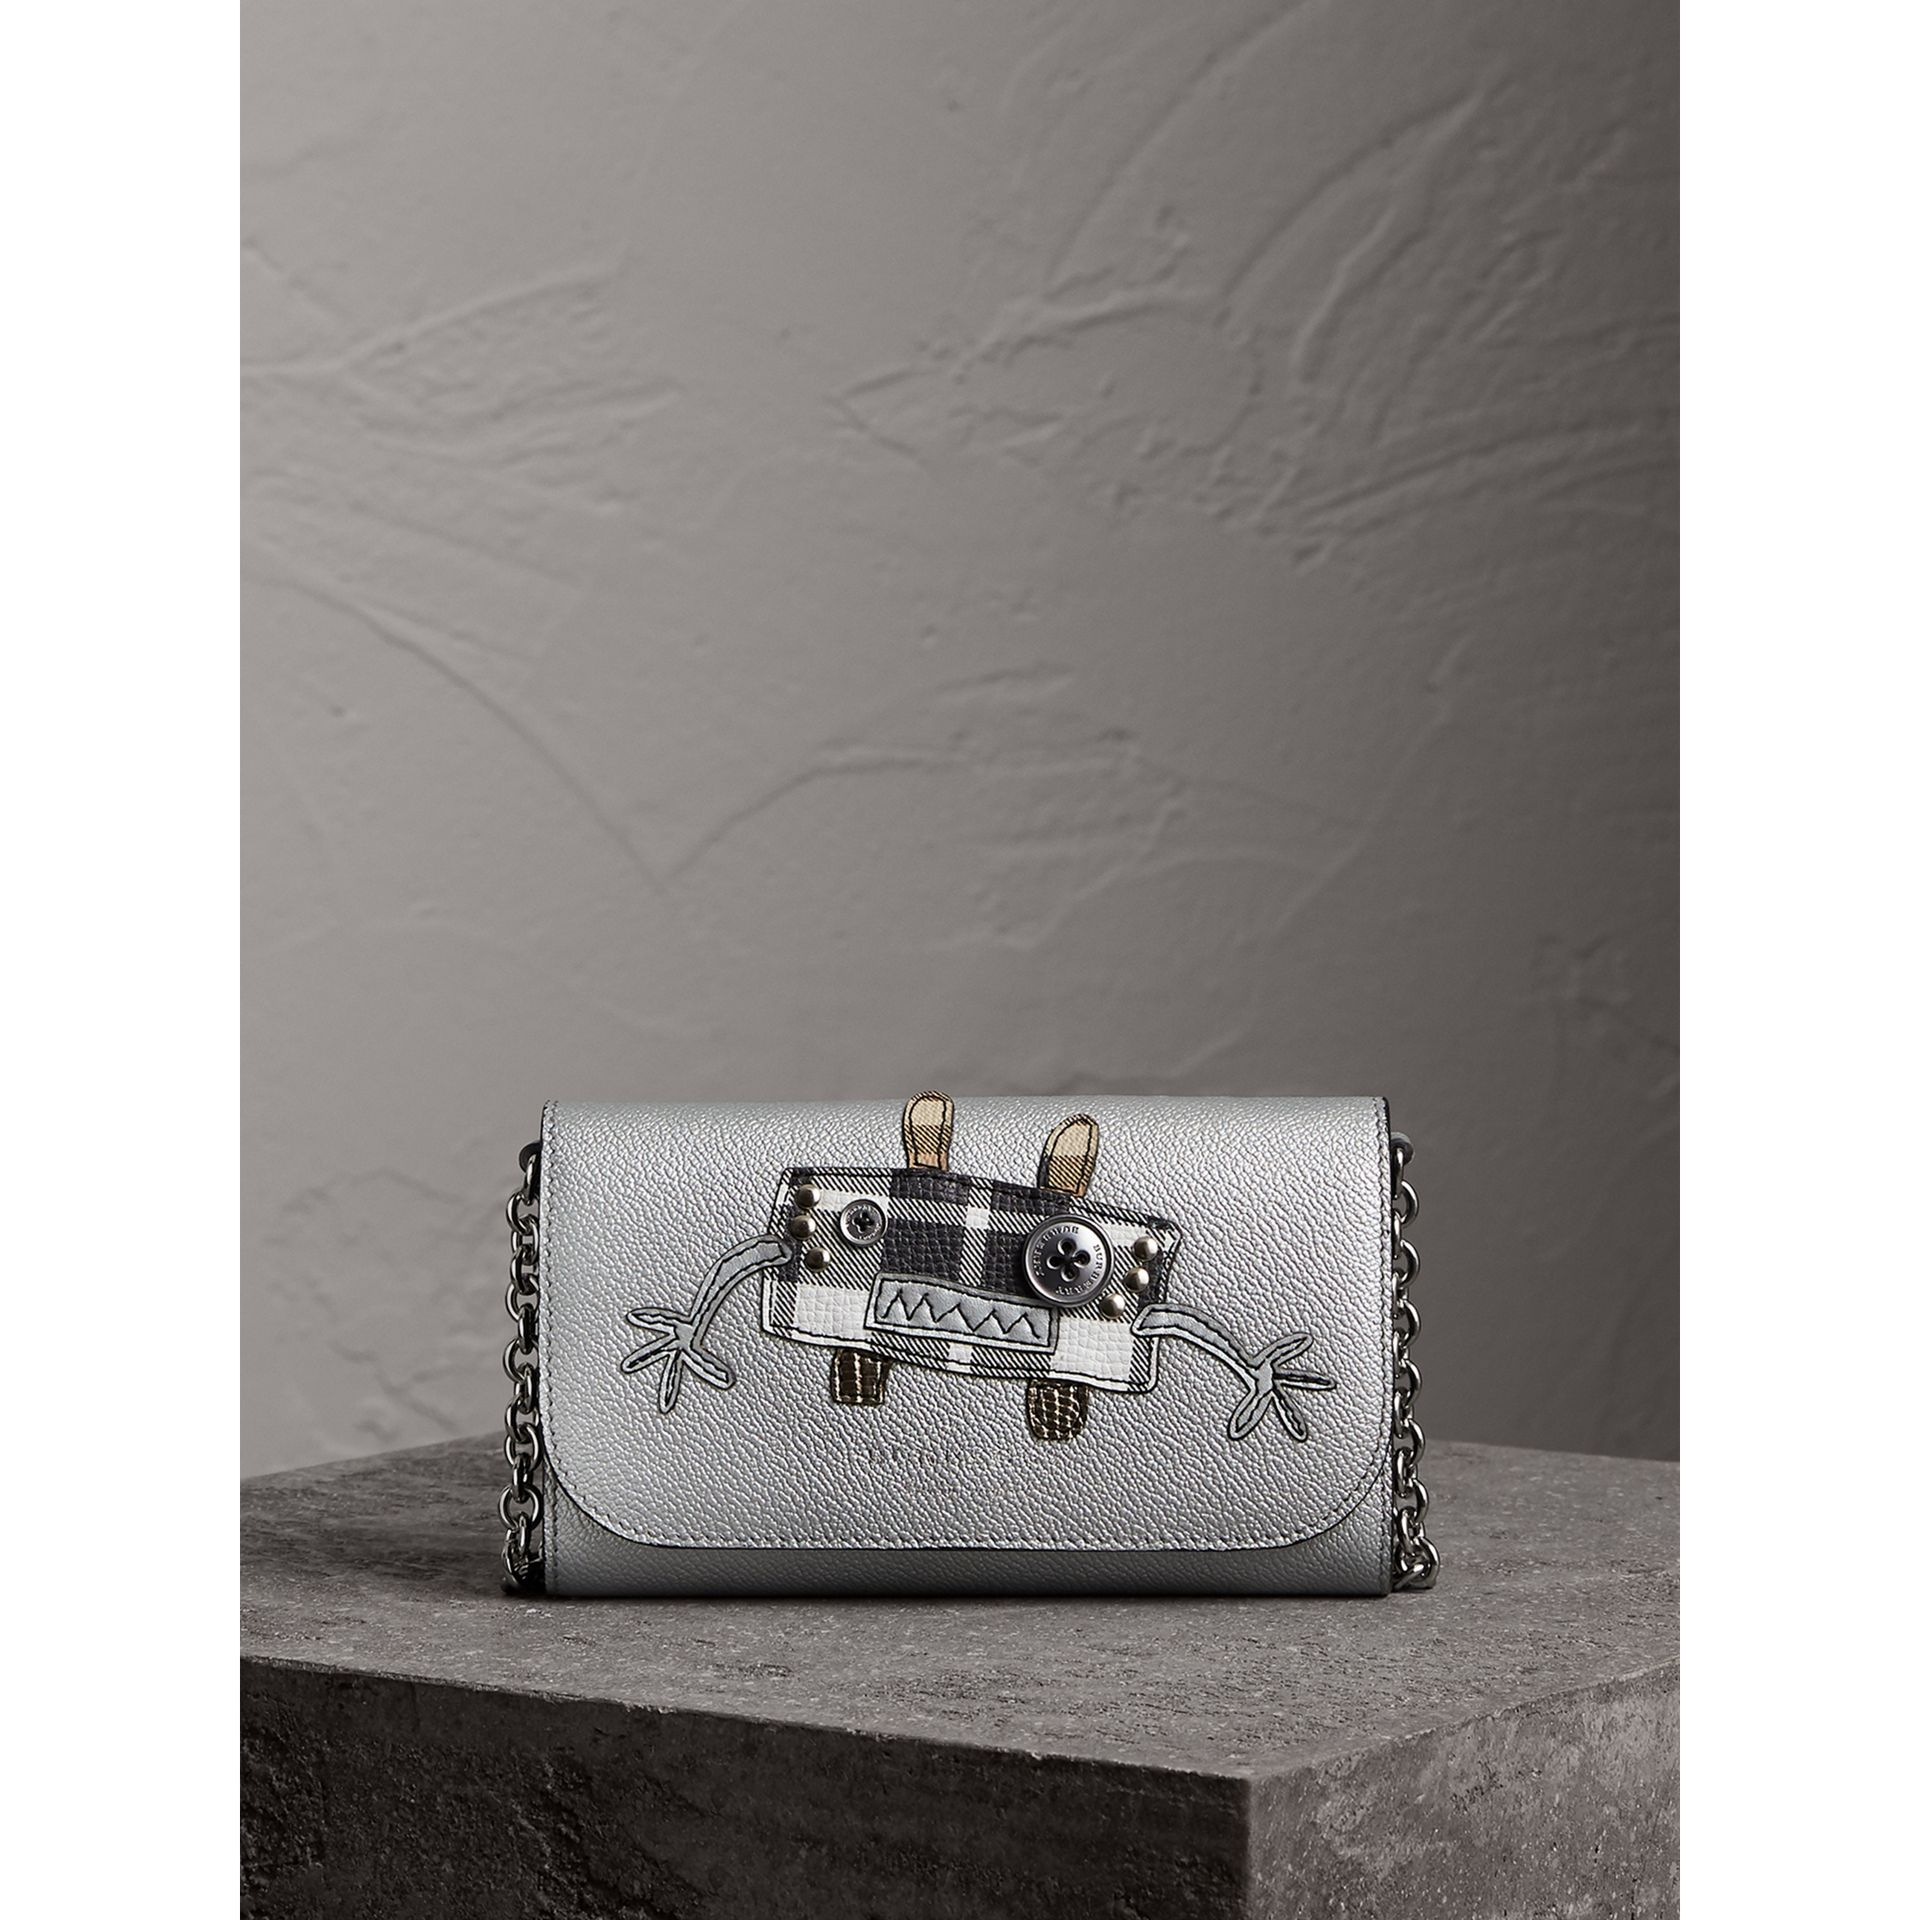 Creature Appliqué Metallic Leather Wallet with Chain in Silver/multicolour - Women | Burberry - gallery image 6